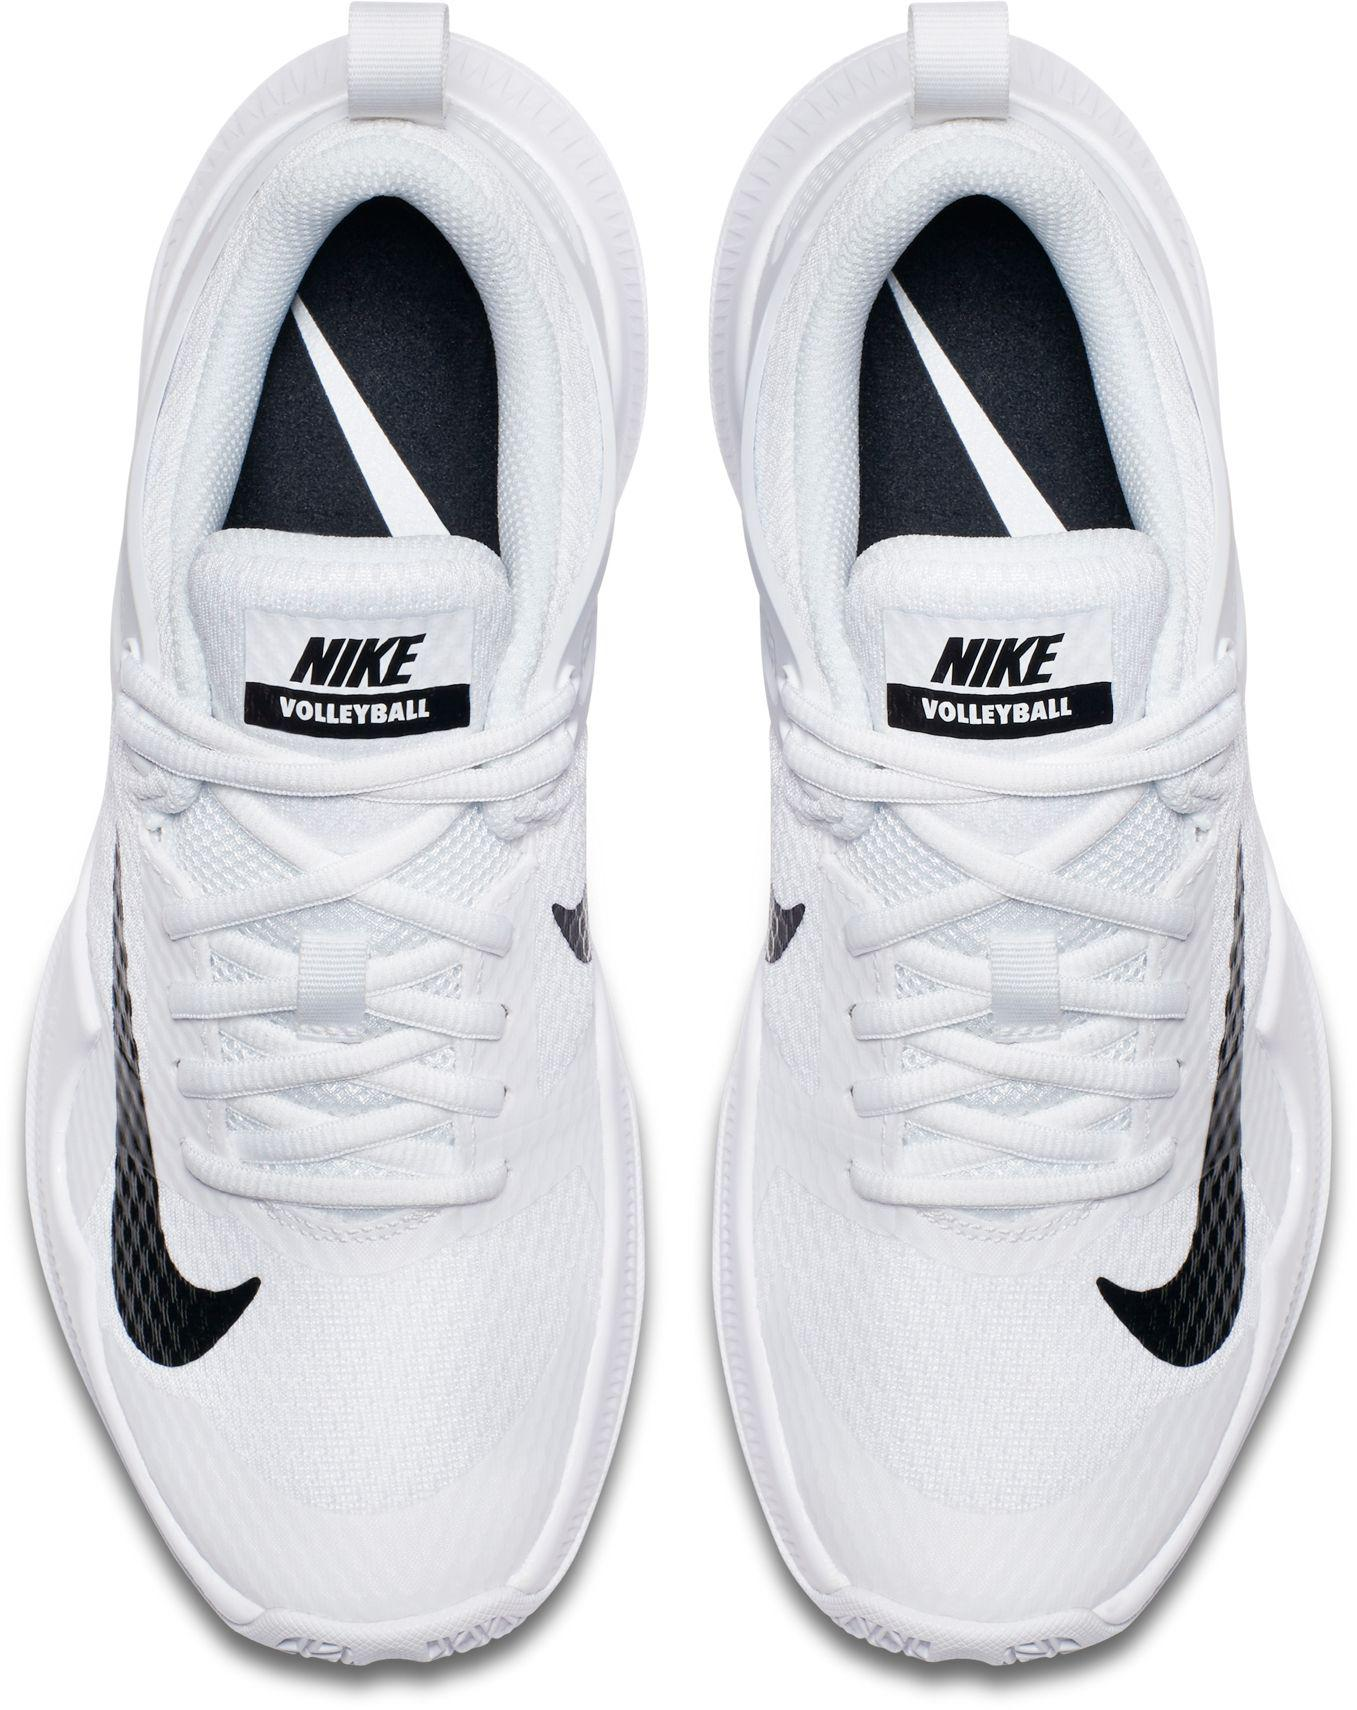 sports shoes 3795c 19eae Nike - White Air Zoom Hyperace Volleyball Shoes - Lyst